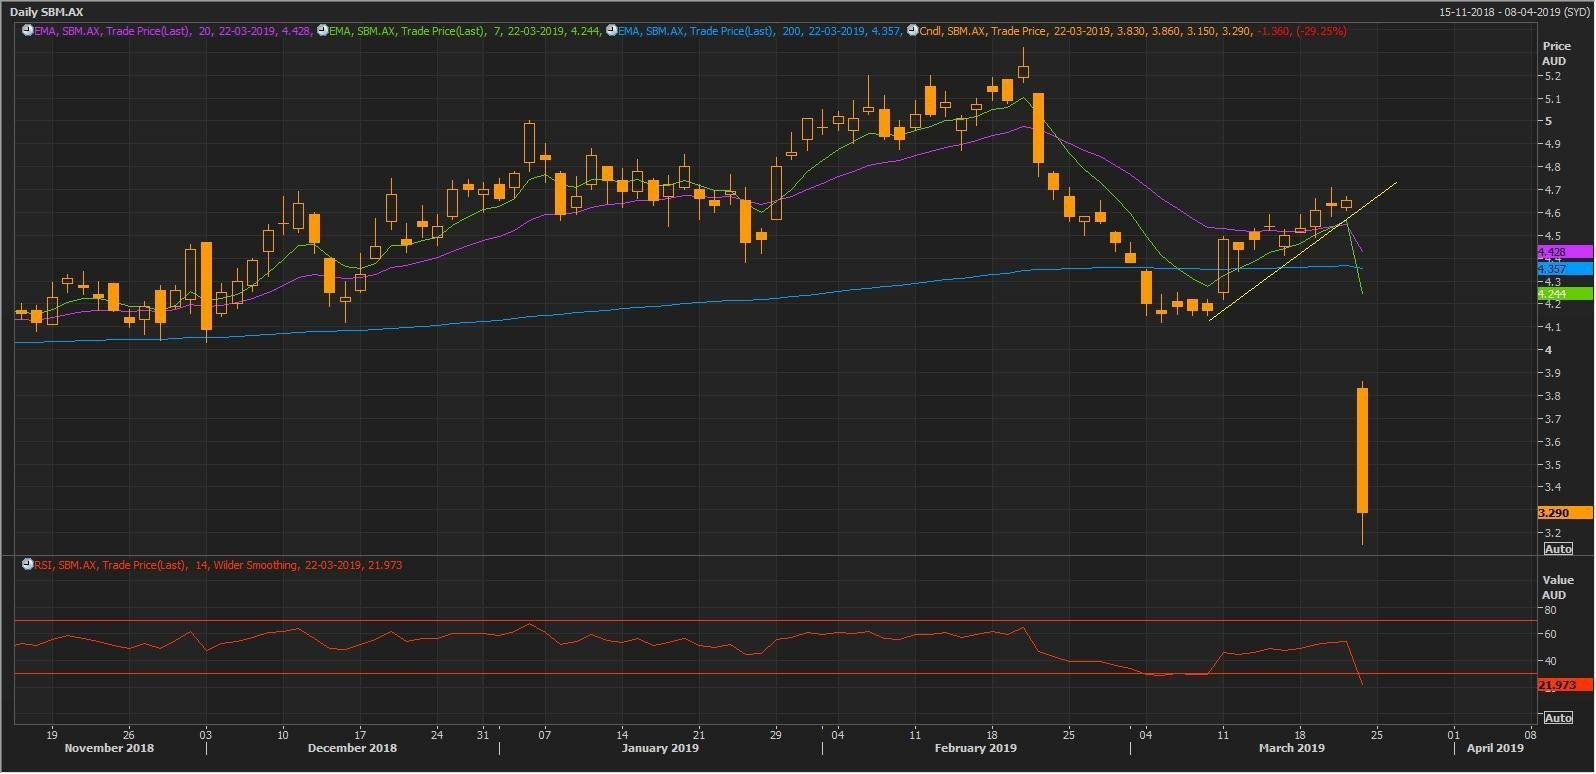 Source: Thomson Reuters: SBM Daily Chart